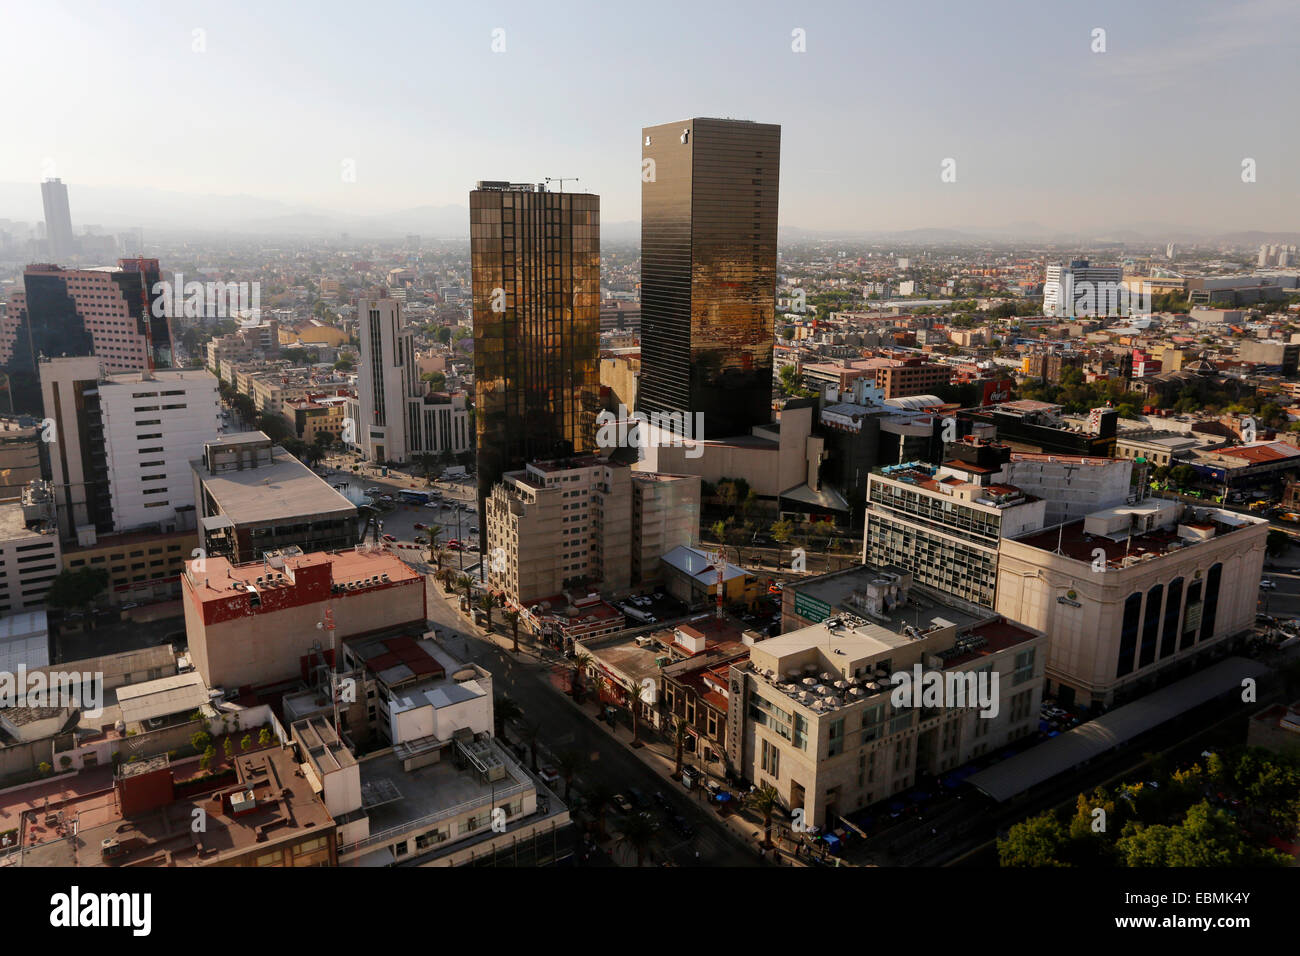 View over the inner city, Mexico City, Federal District, Mexico - Stock Image